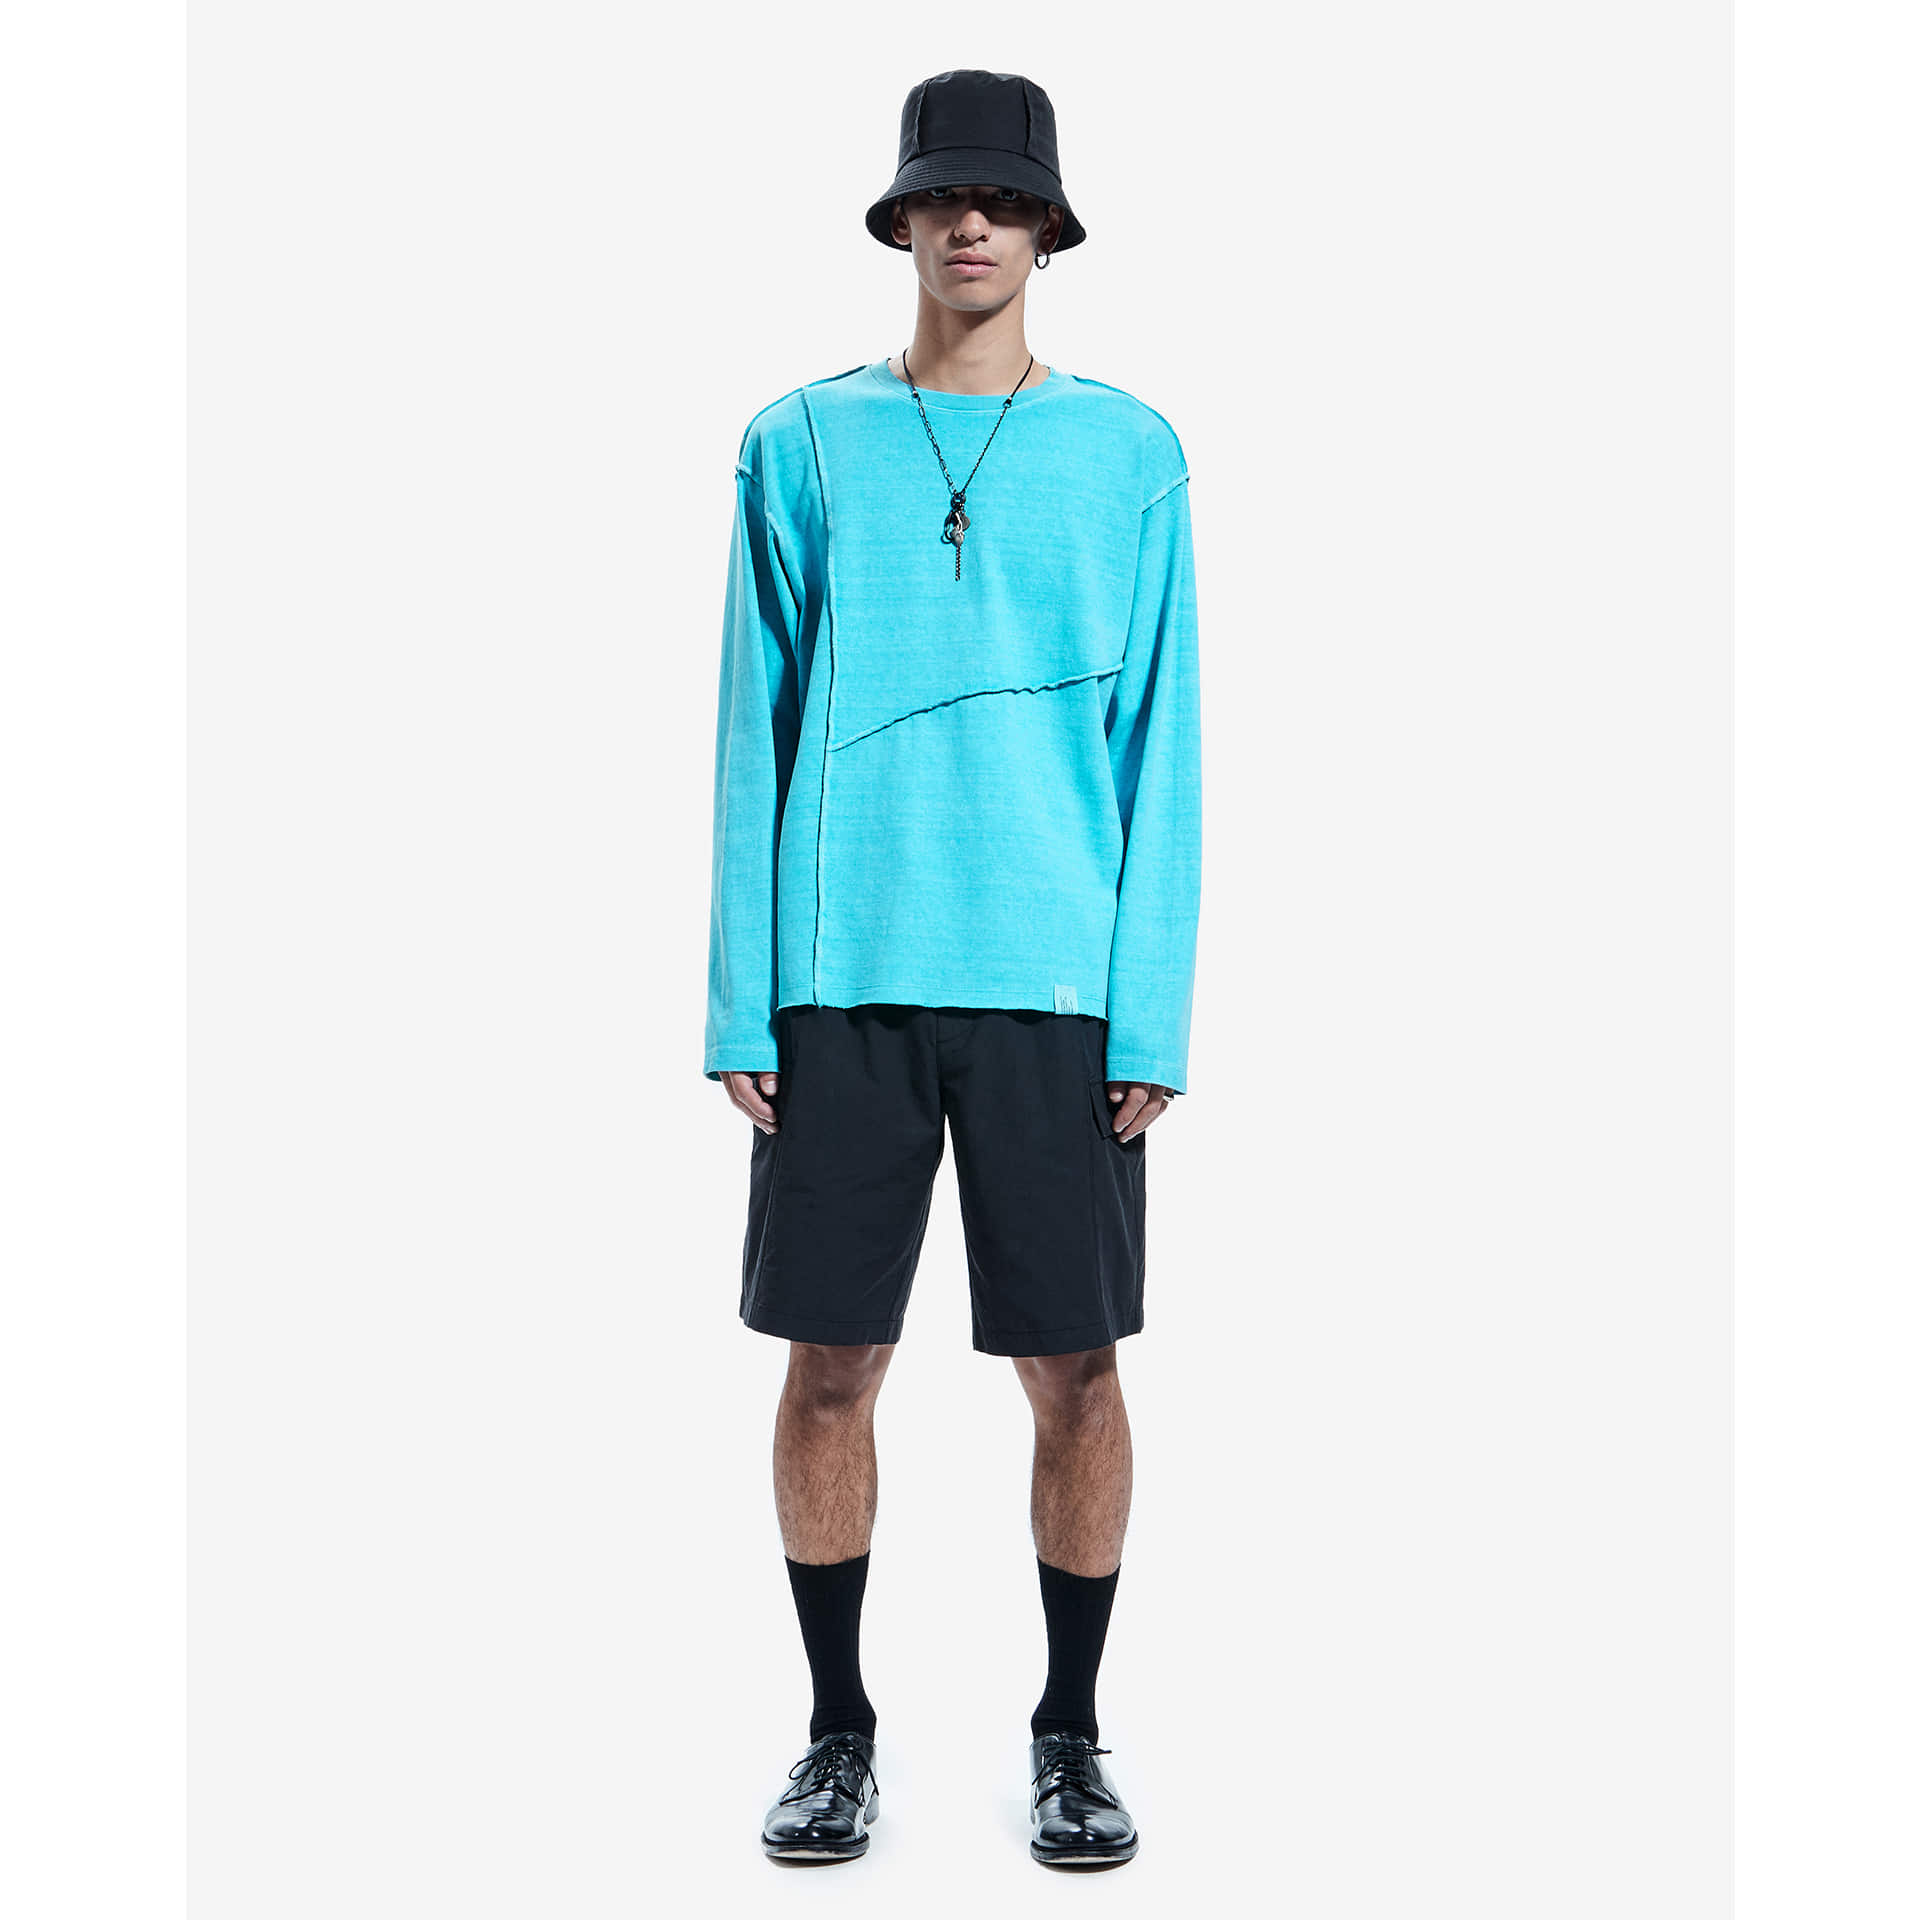 layer-SEAM OUT P-DYED LONG SLEEVE TEE powder blue♡韓國男裝上衣